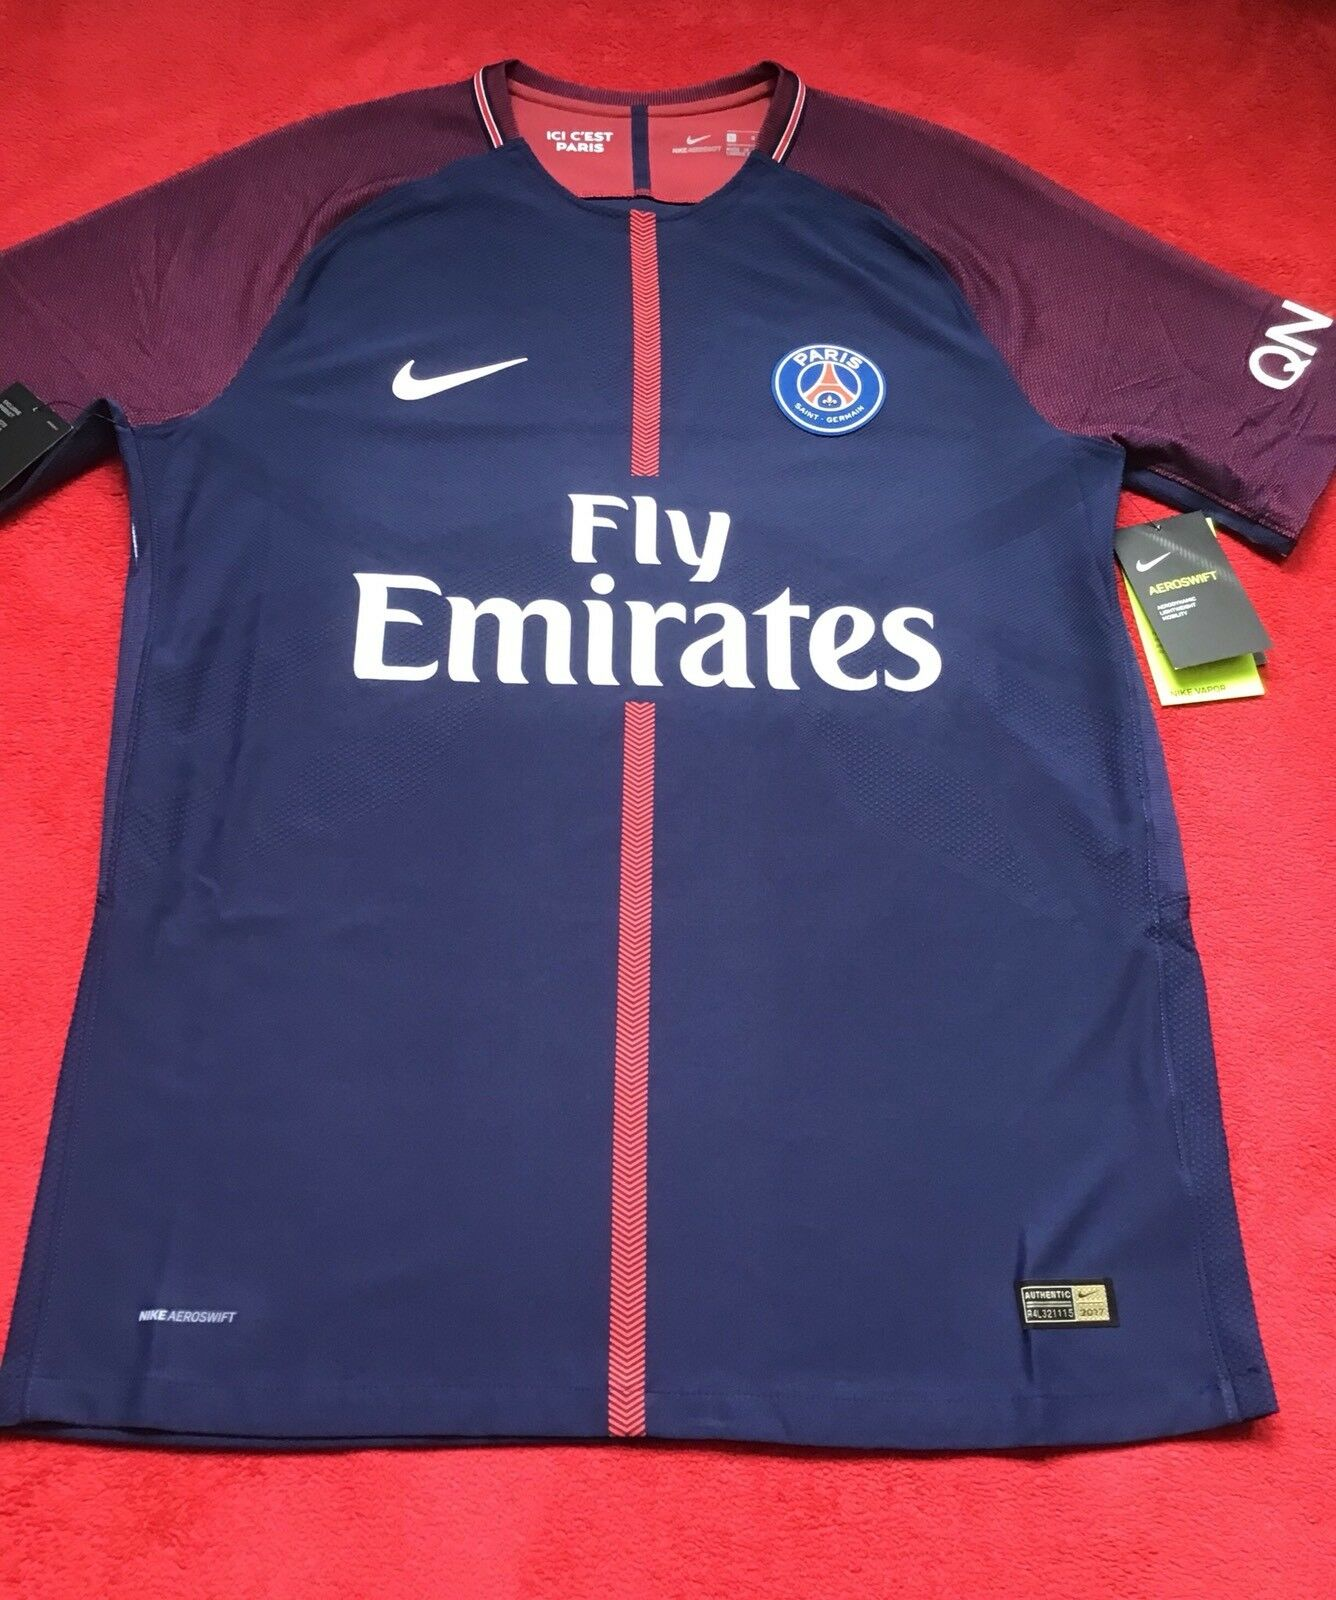 BNWT NIKE FRANCE PSG PARIS 17 18 HOME VAPOR AEROSWIFT MATCH JugarER ISSUE, XL